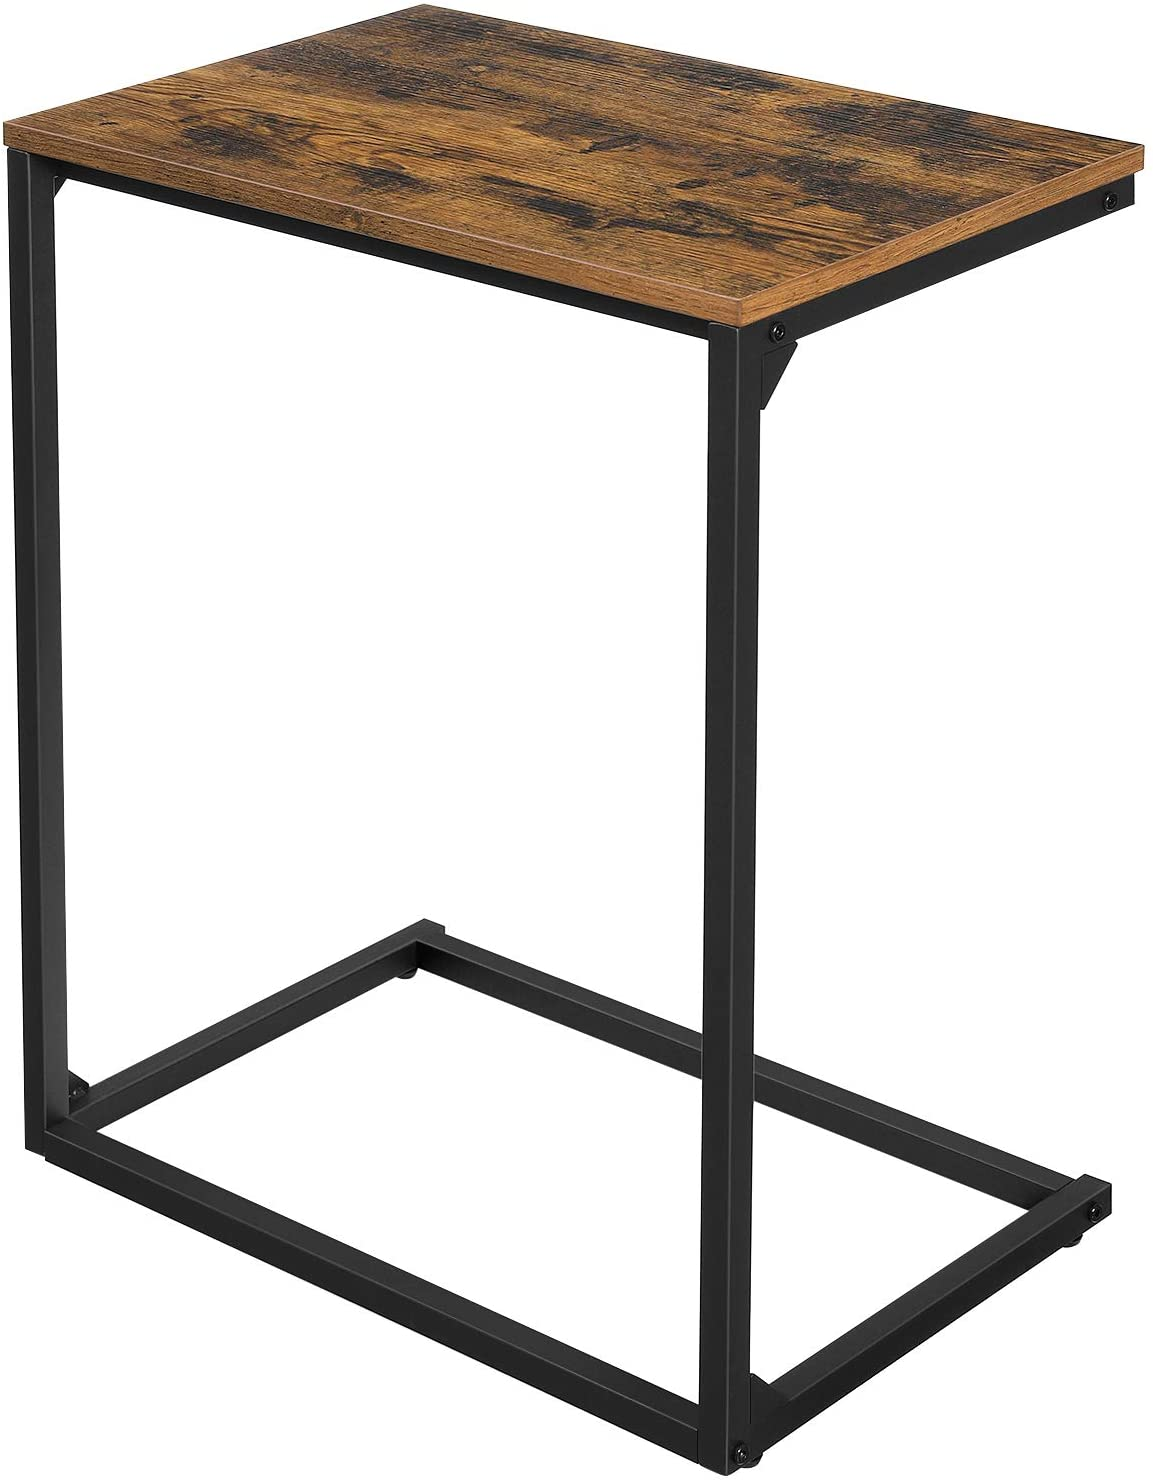 Enjoy fast, free nationwide shipping!  Owned by a husband and wife team of high-school music teachers, HawkinsWoodshop.com is your one stop shop for affordable furniture.  Shop HawkinsWoodshop.com for solid wood & metal modern, traditional, contemporary, industrial, custom, rustic, and farmhouse furniture including our Rustic Brown Simple Structure Side Table.